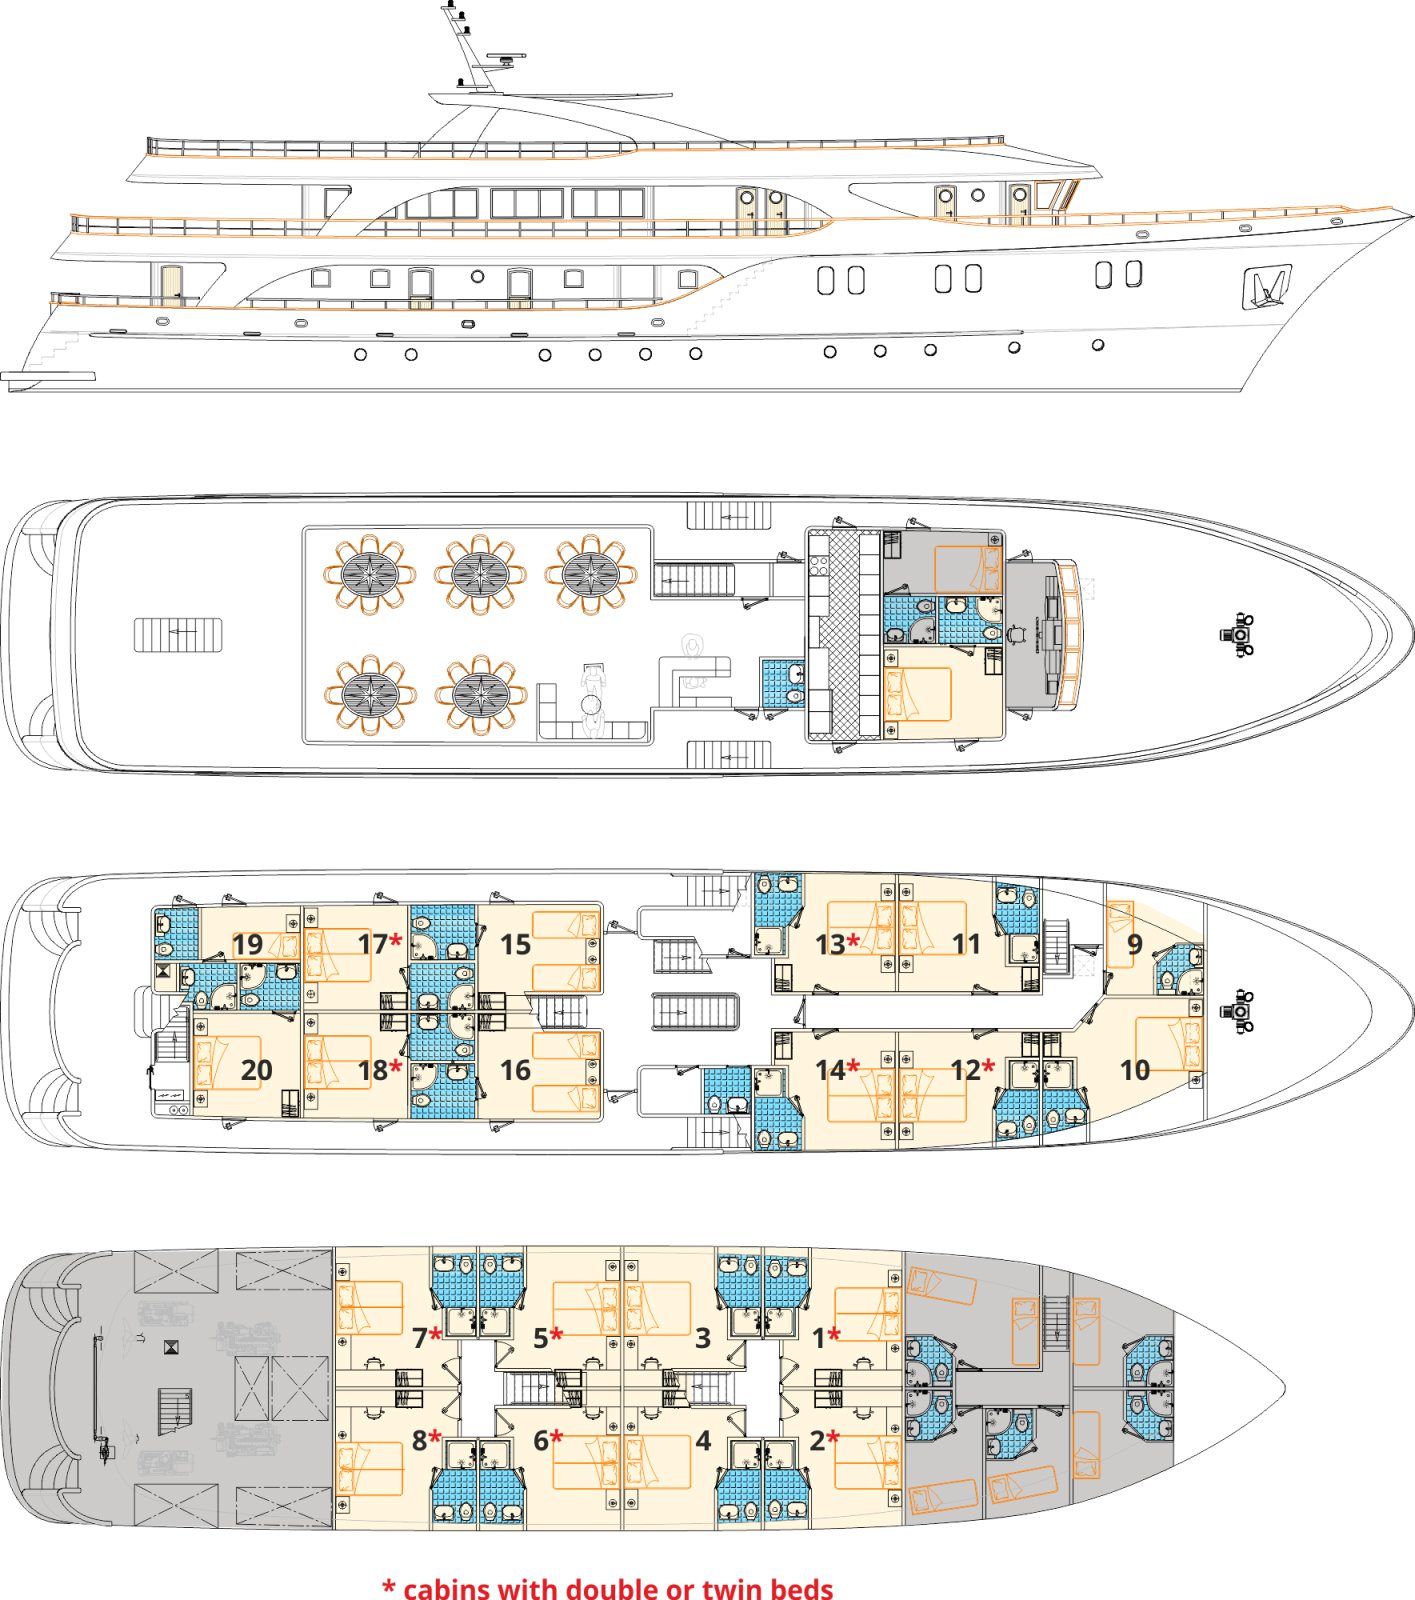 Cabin layout for Croatian Deluxe Ships